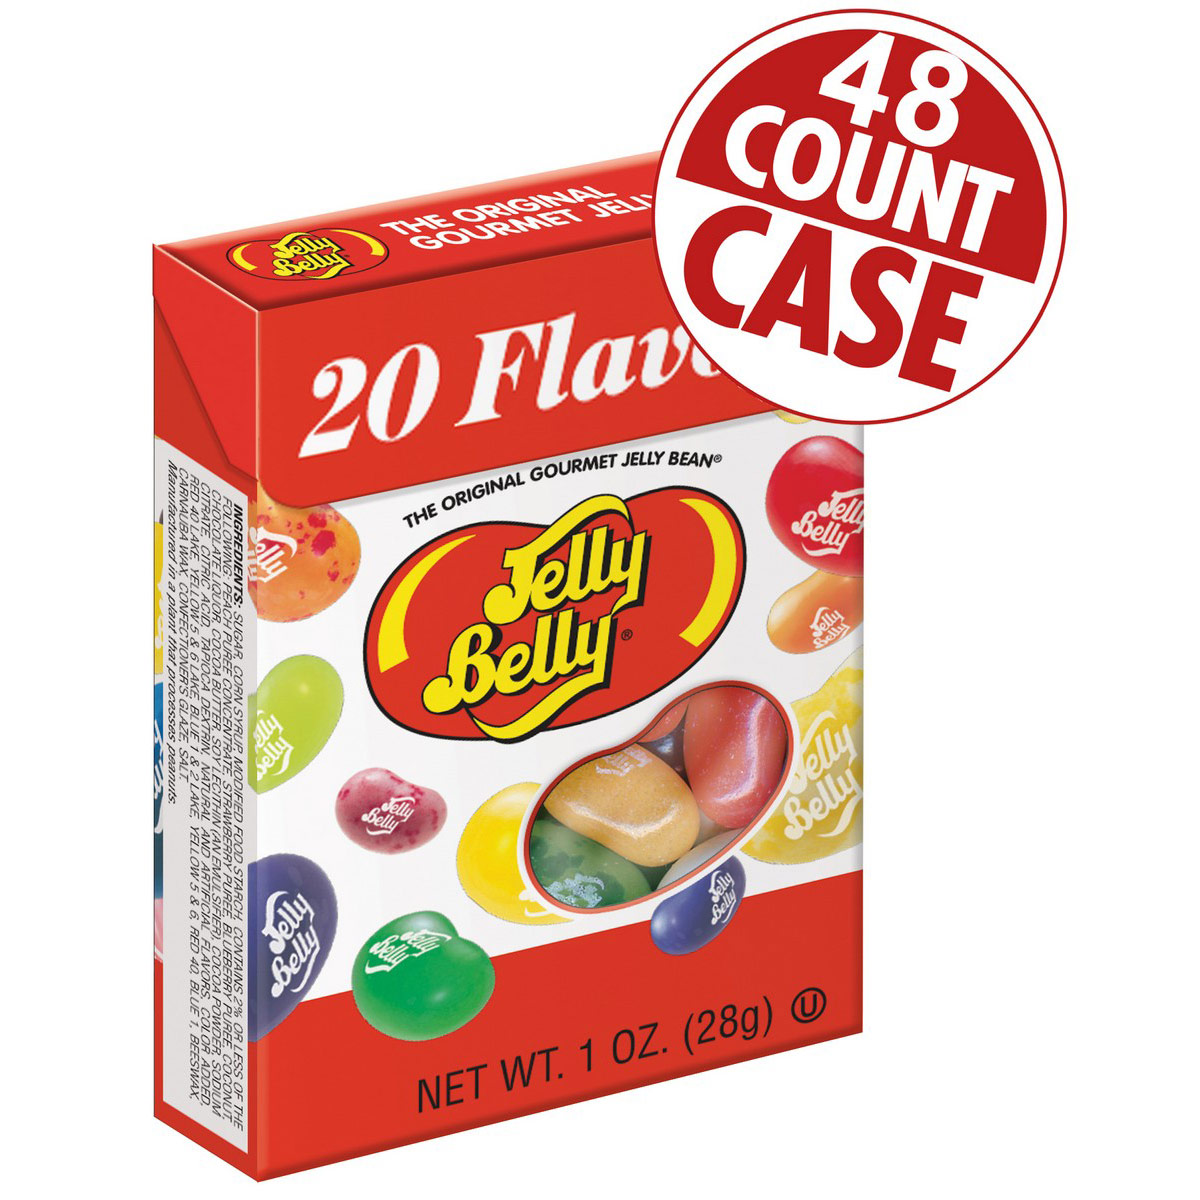 20 Assorted Jelly Bean Flavors - 1 oz Flip Top boxes - 48-Count Case